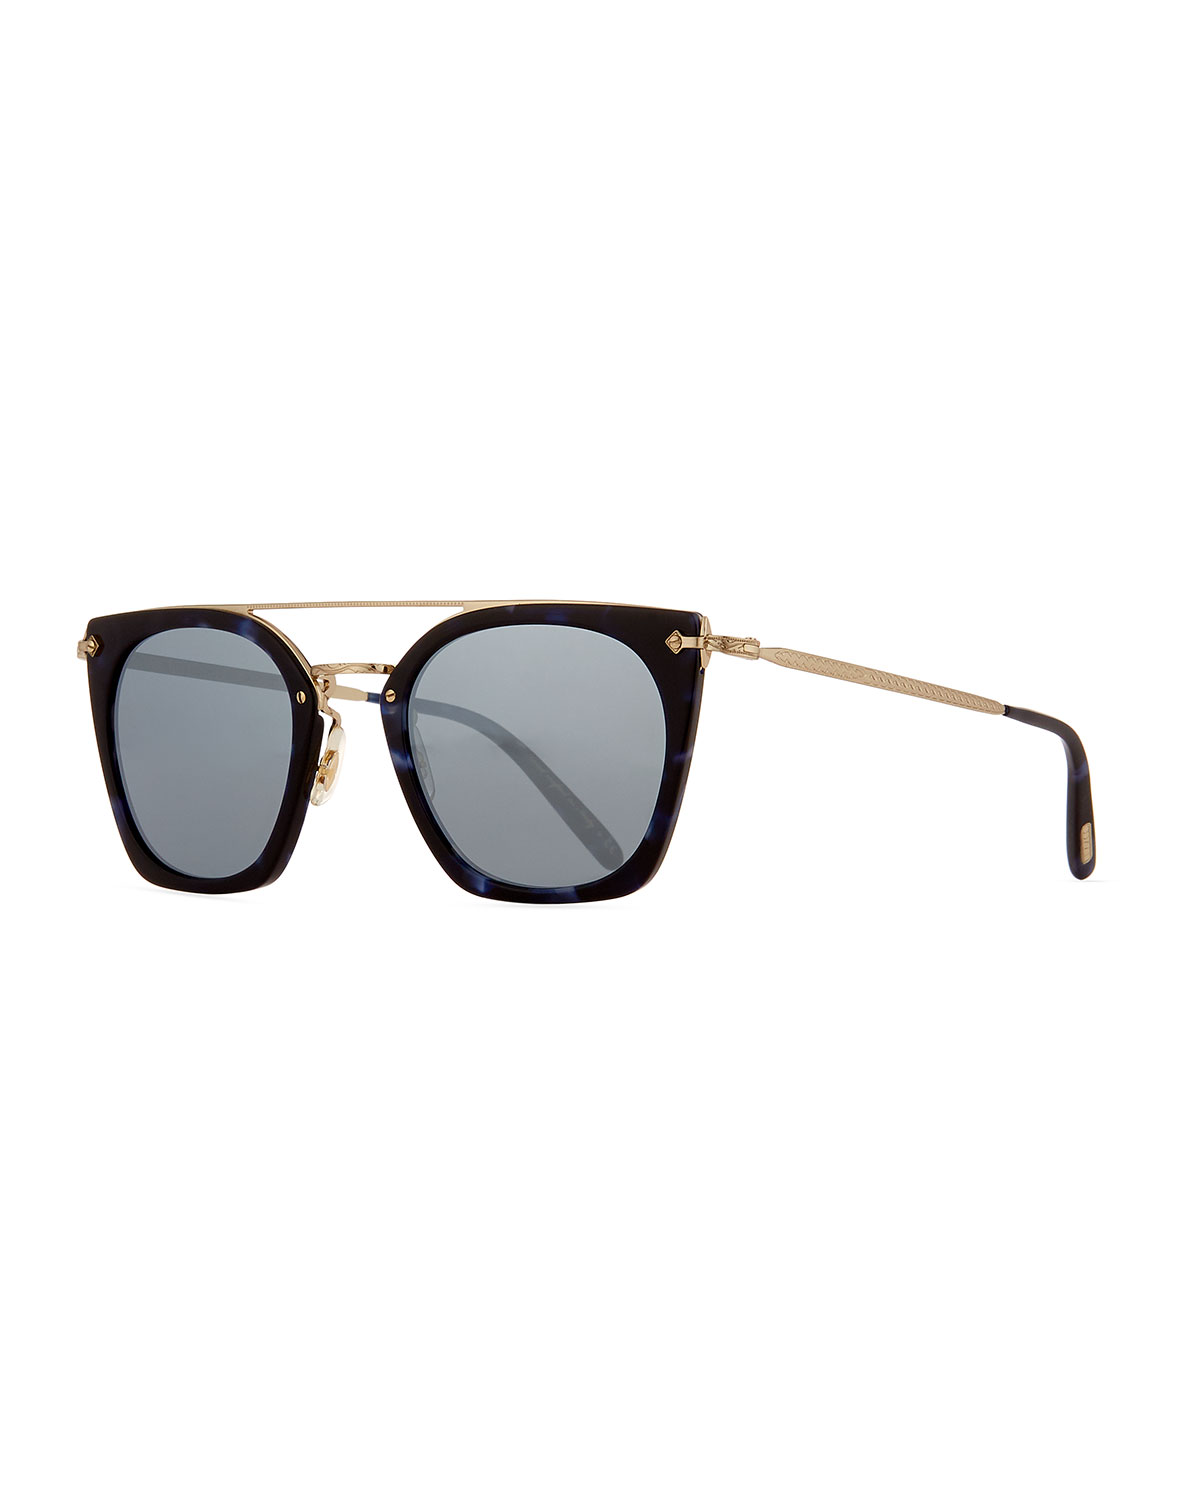 29d62a9e04d3d Oliver Peoples Women s Dacette Brow Bar Mirrored Square Sunglasses ...